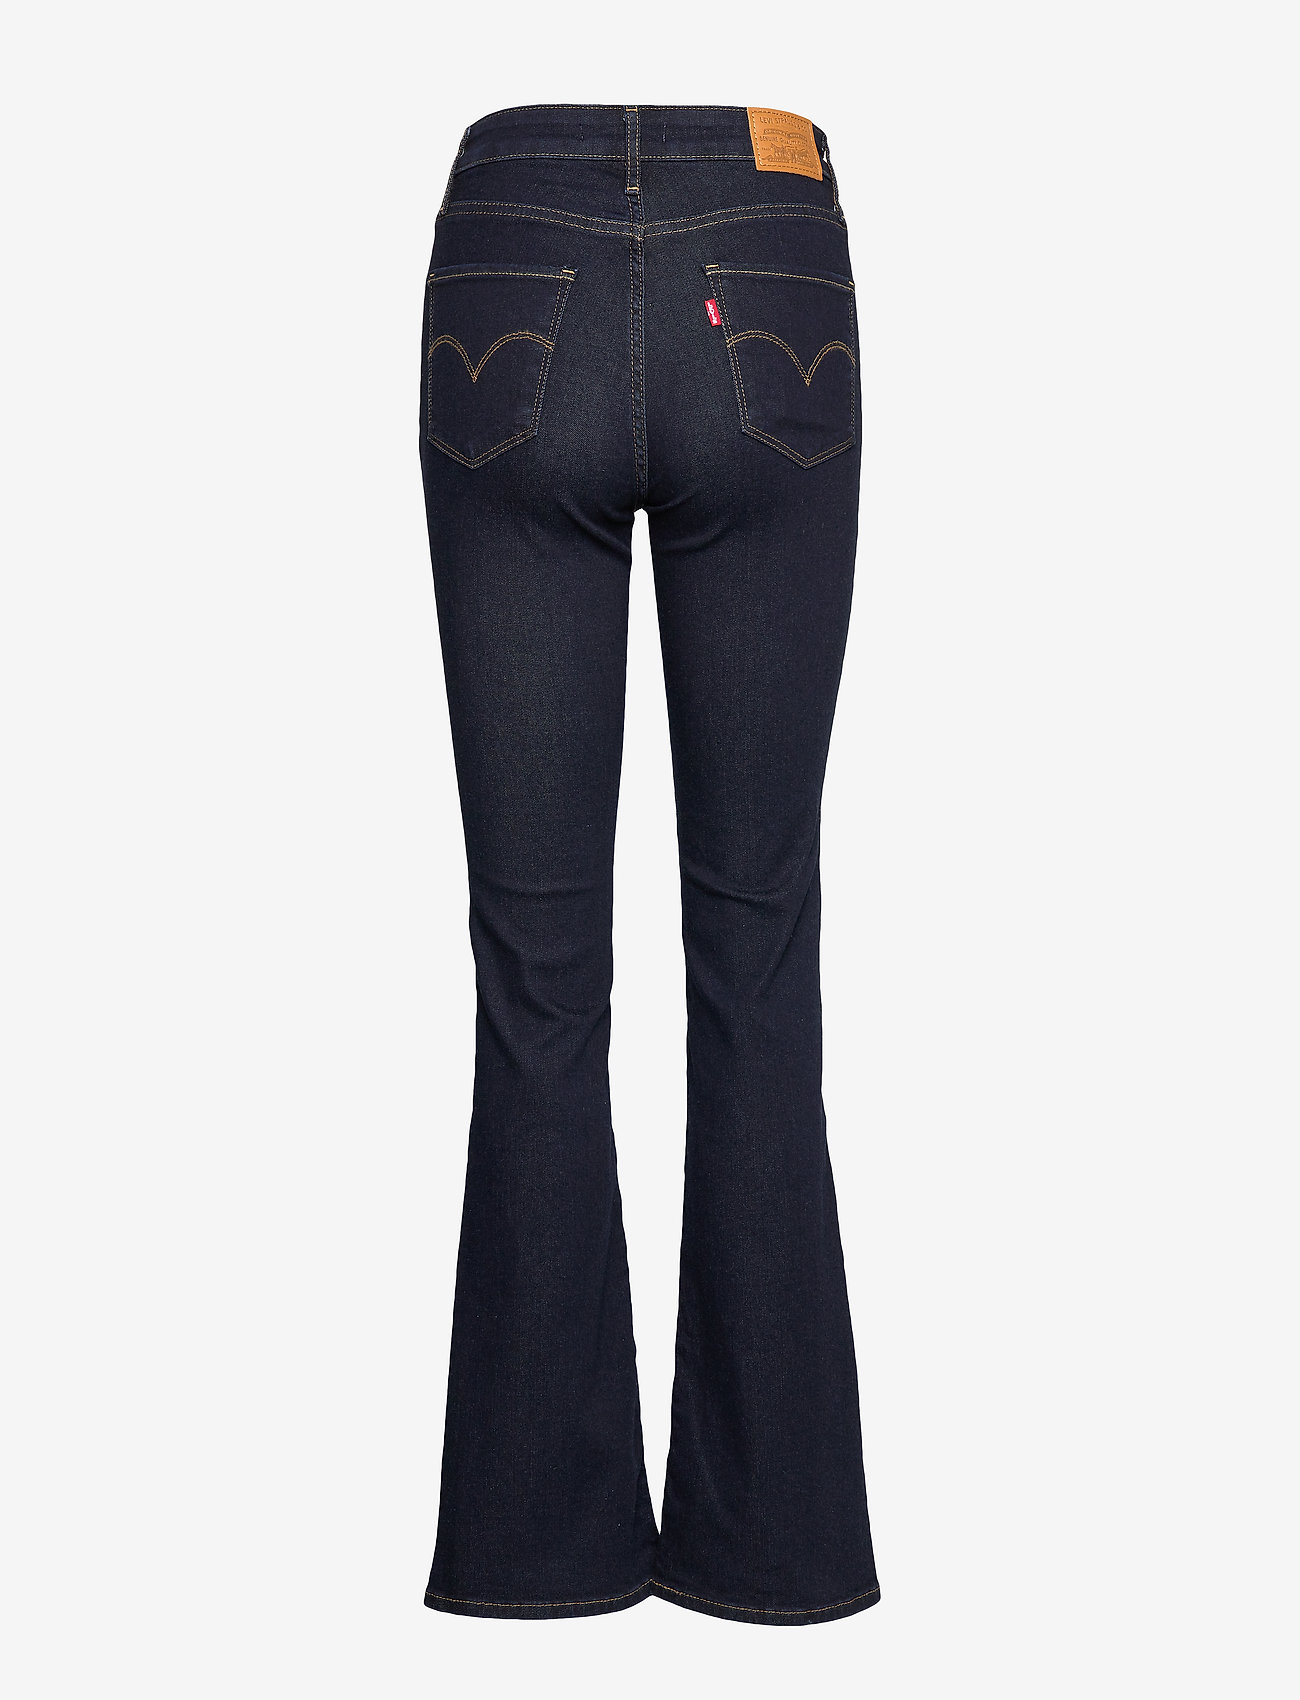 LEVI´S Women - 725 HIGH RISE BOOTCUT TO THE N - schlaghosen - dark indigo - flat finish - 1